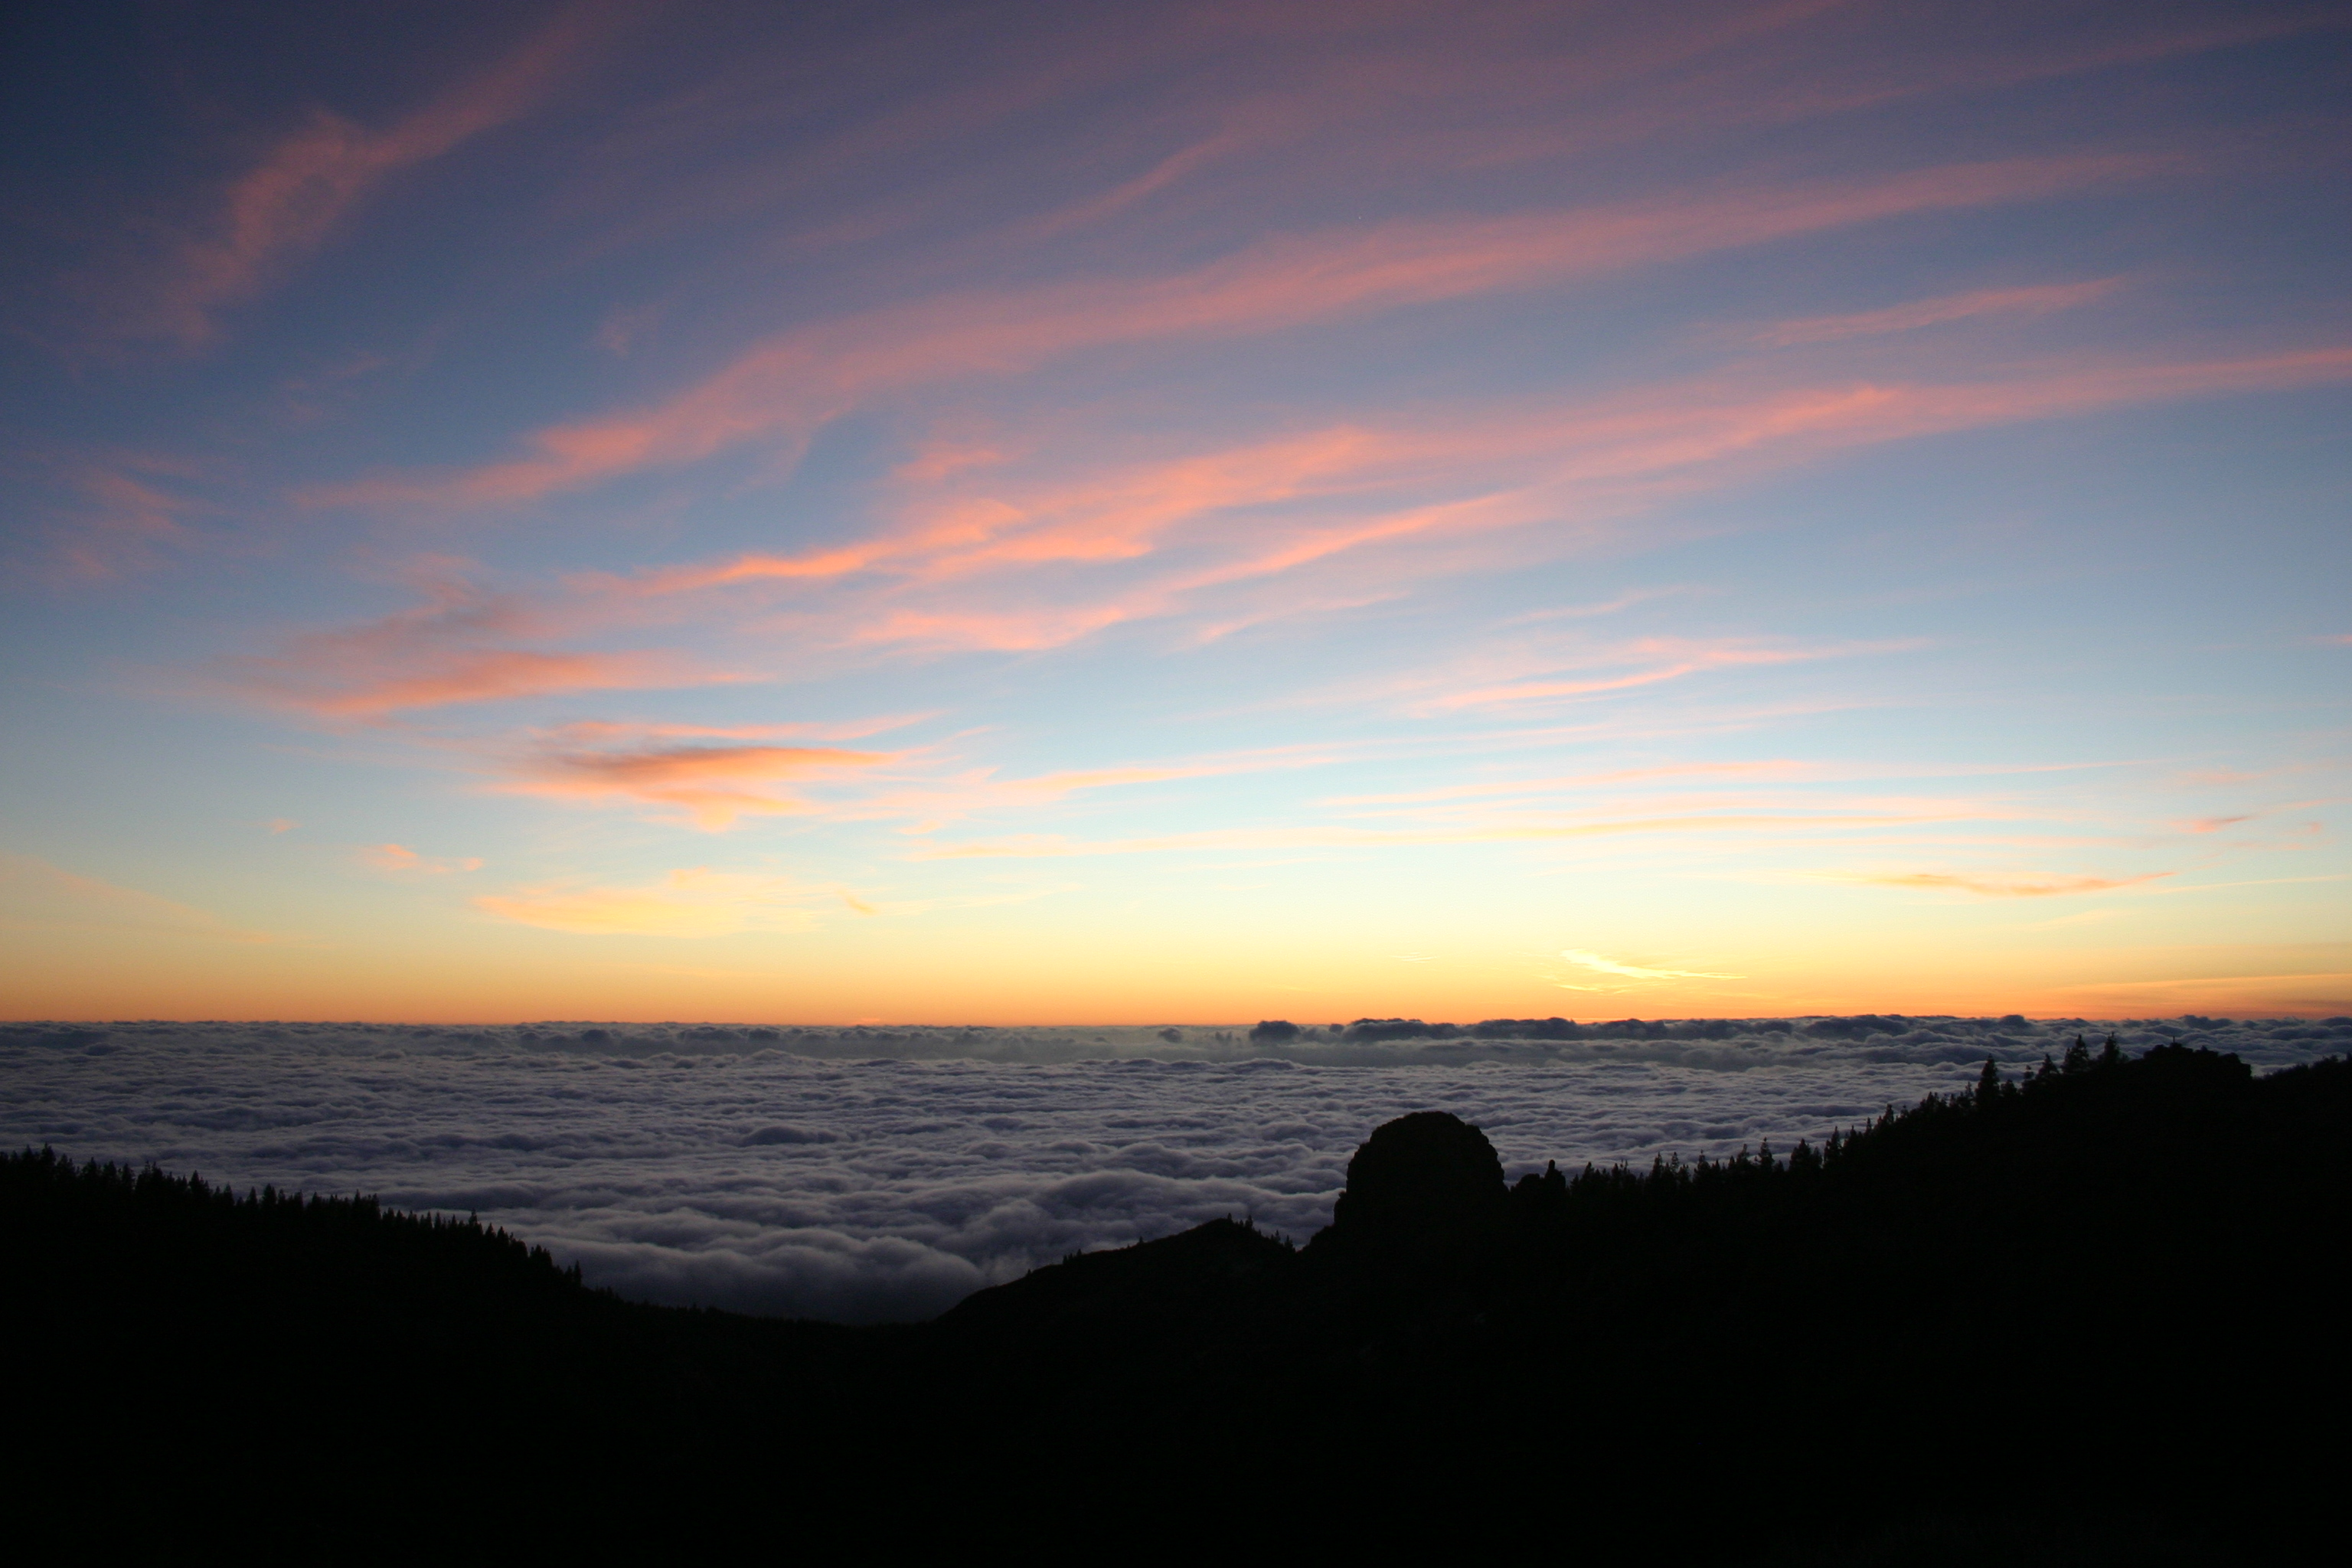 Sunset looking down on clouds from Teide 5 (398027219)